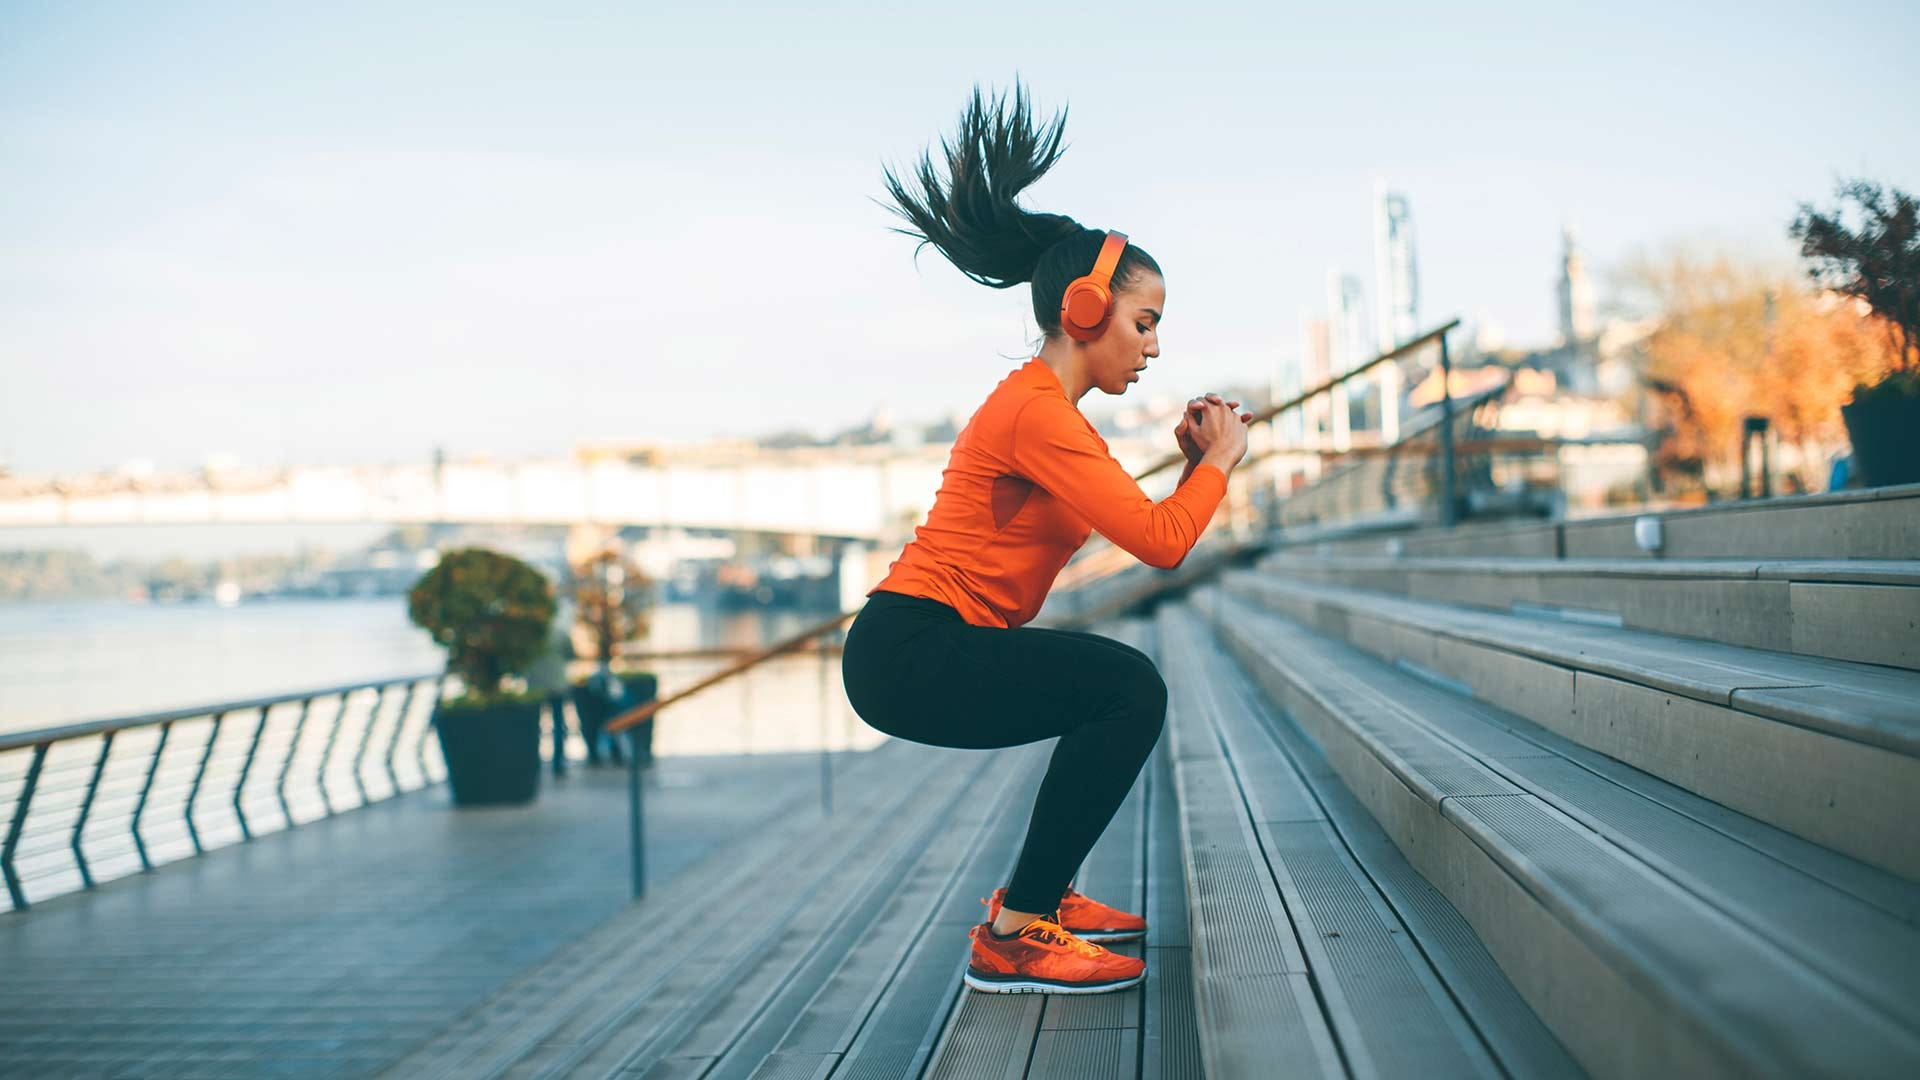 A woman doing jump-squat exercises on staircase in an urban park along a waterfront.